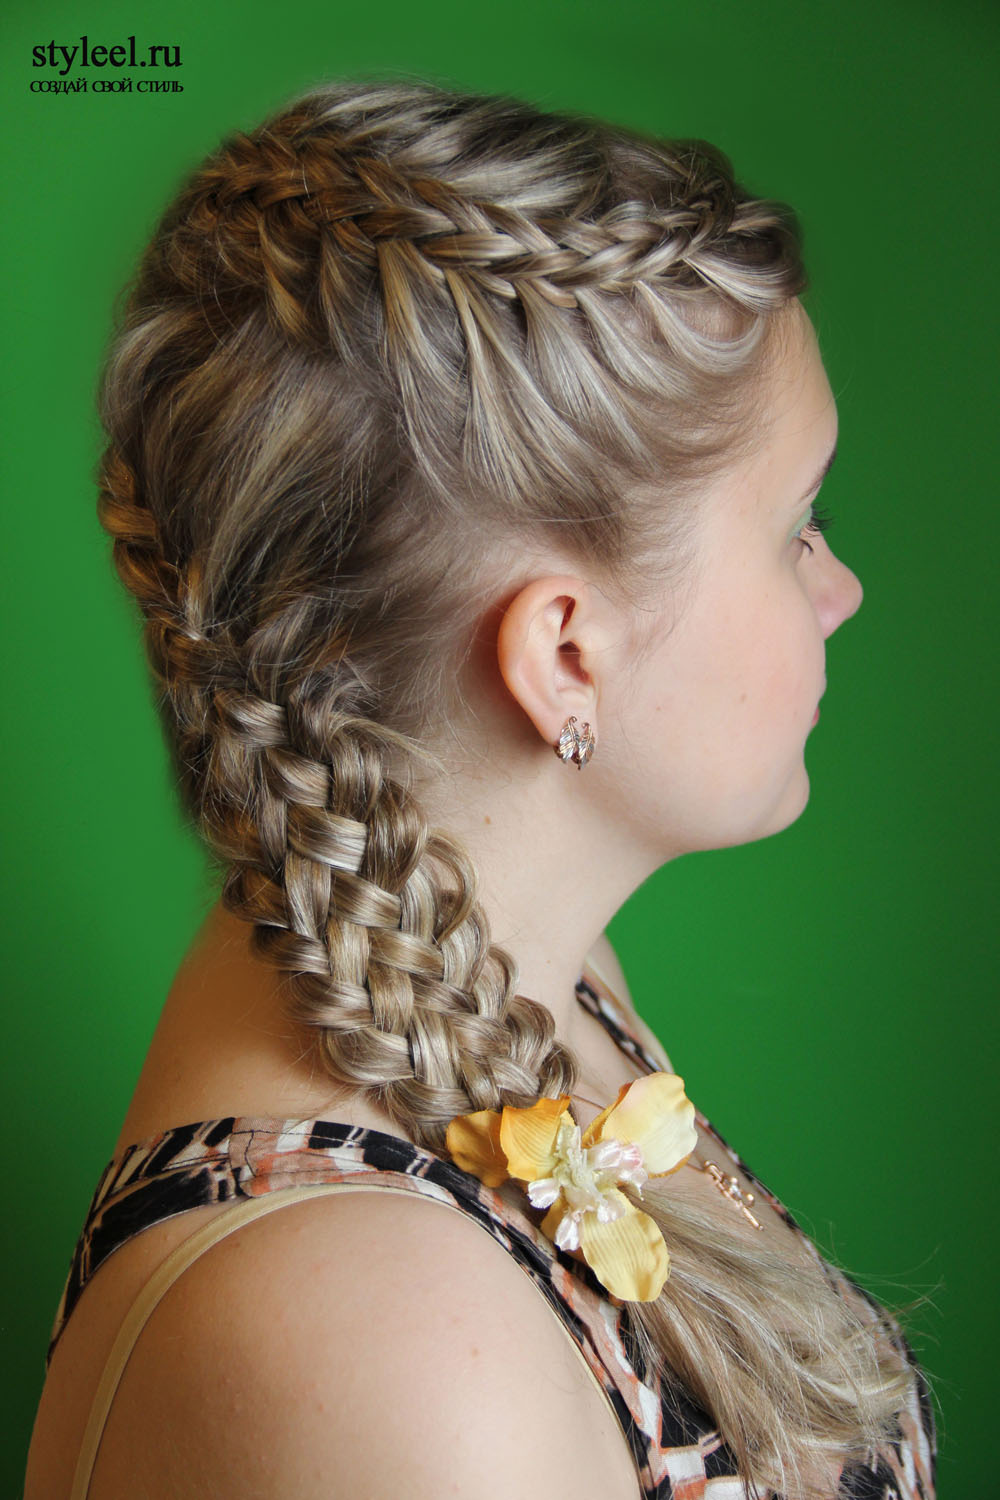 Outstanding Unique Stylish Braid Hairstyle Fashion Urge Hairstyles For Women Draintrainus